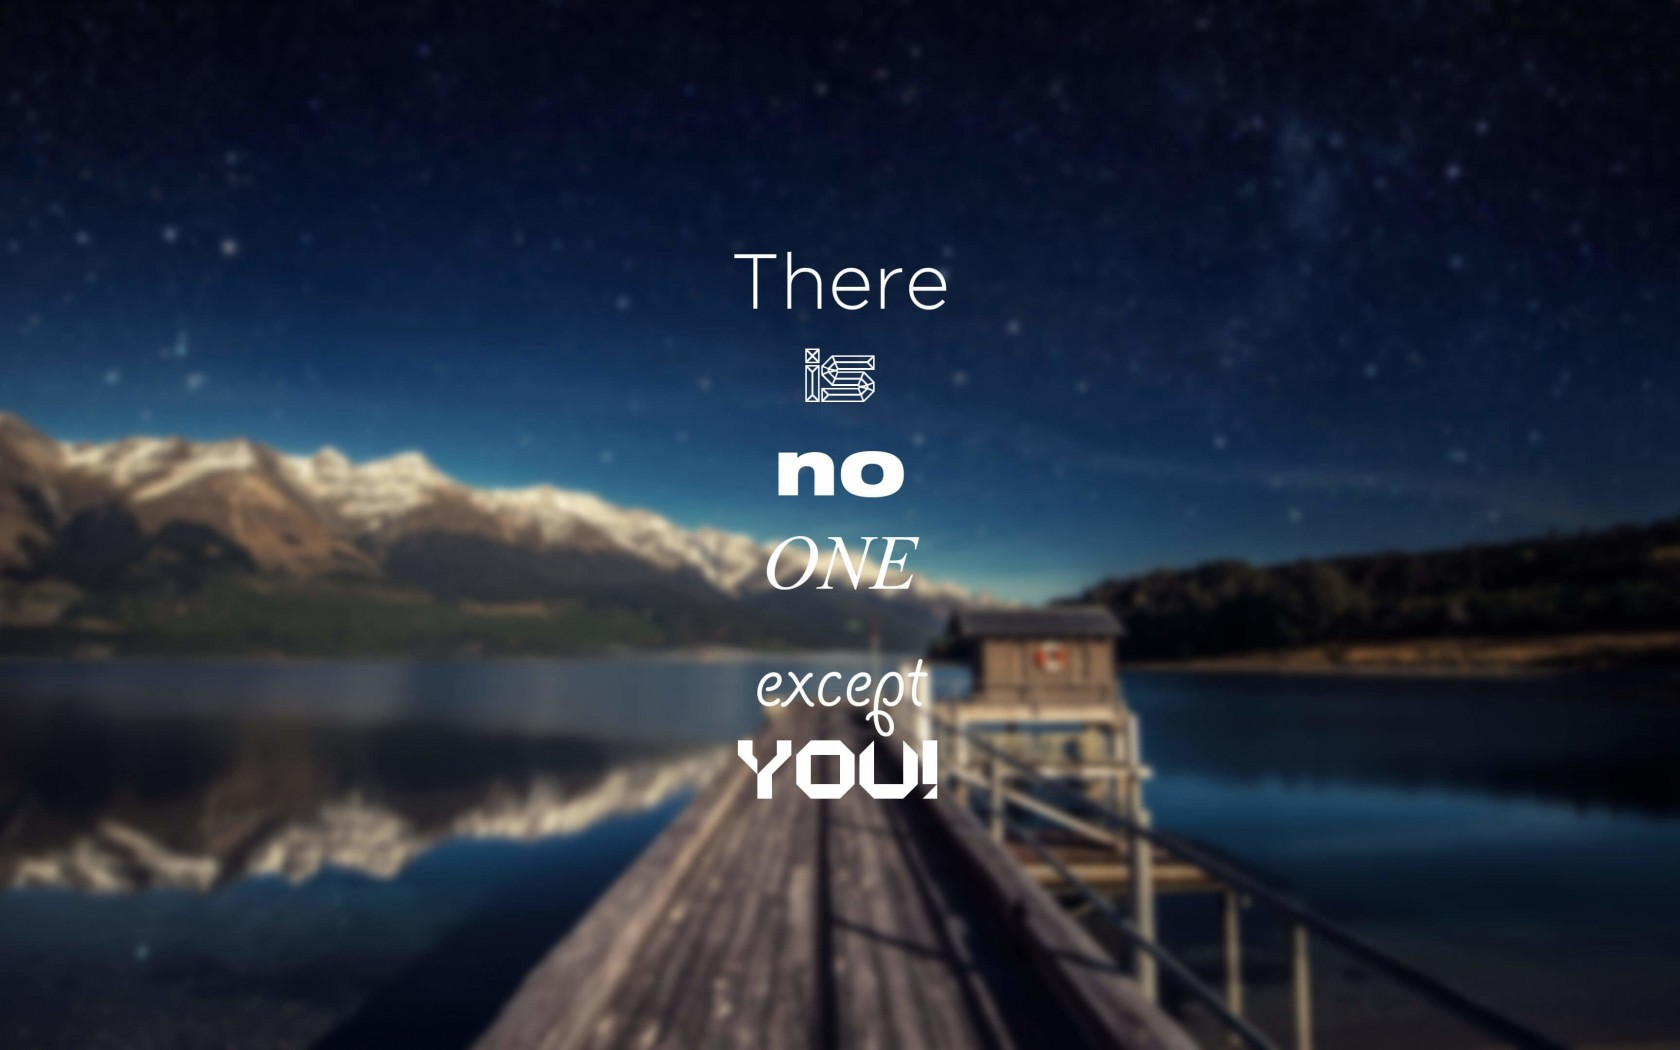 There Is No One Except You Wallpaper for Desktop 1680x1050